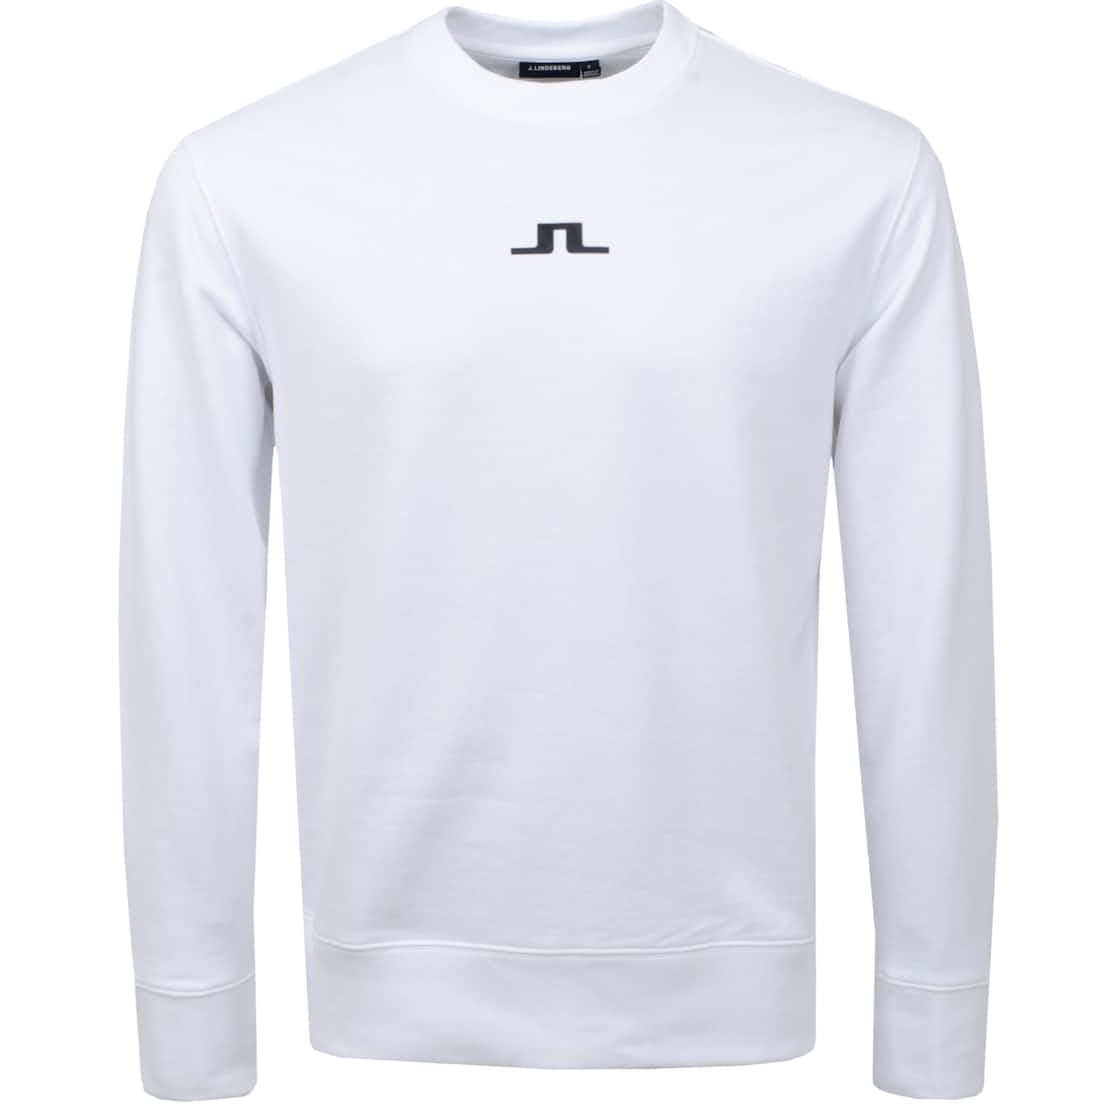 Hurl Bridge JLJL Sweat White - SS20